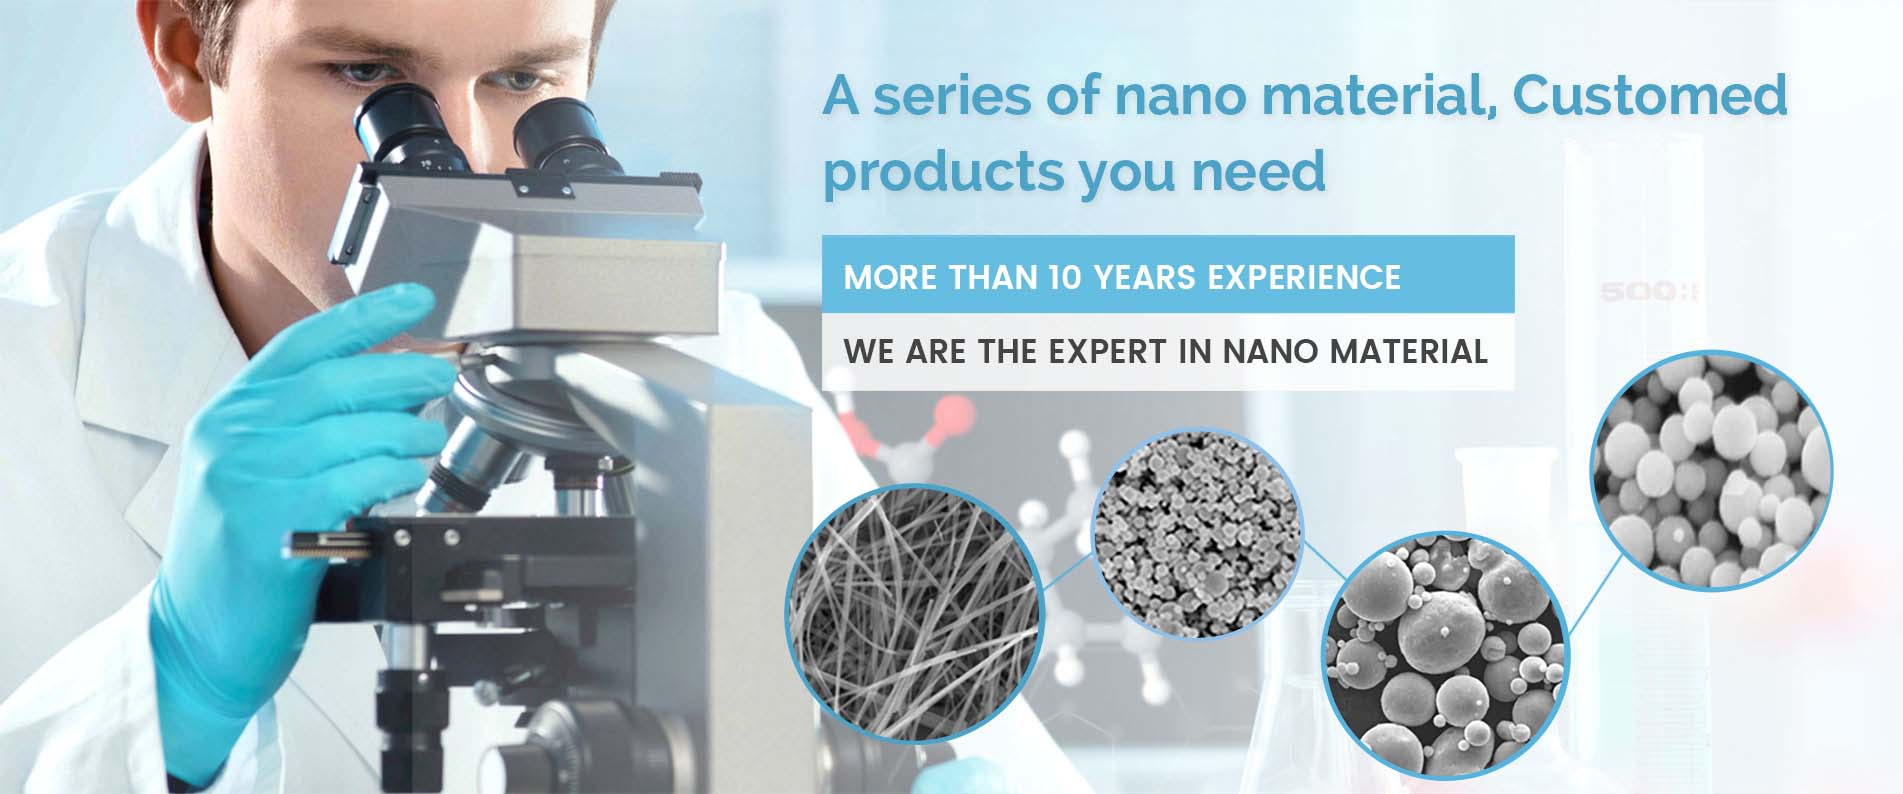 Nano material customed